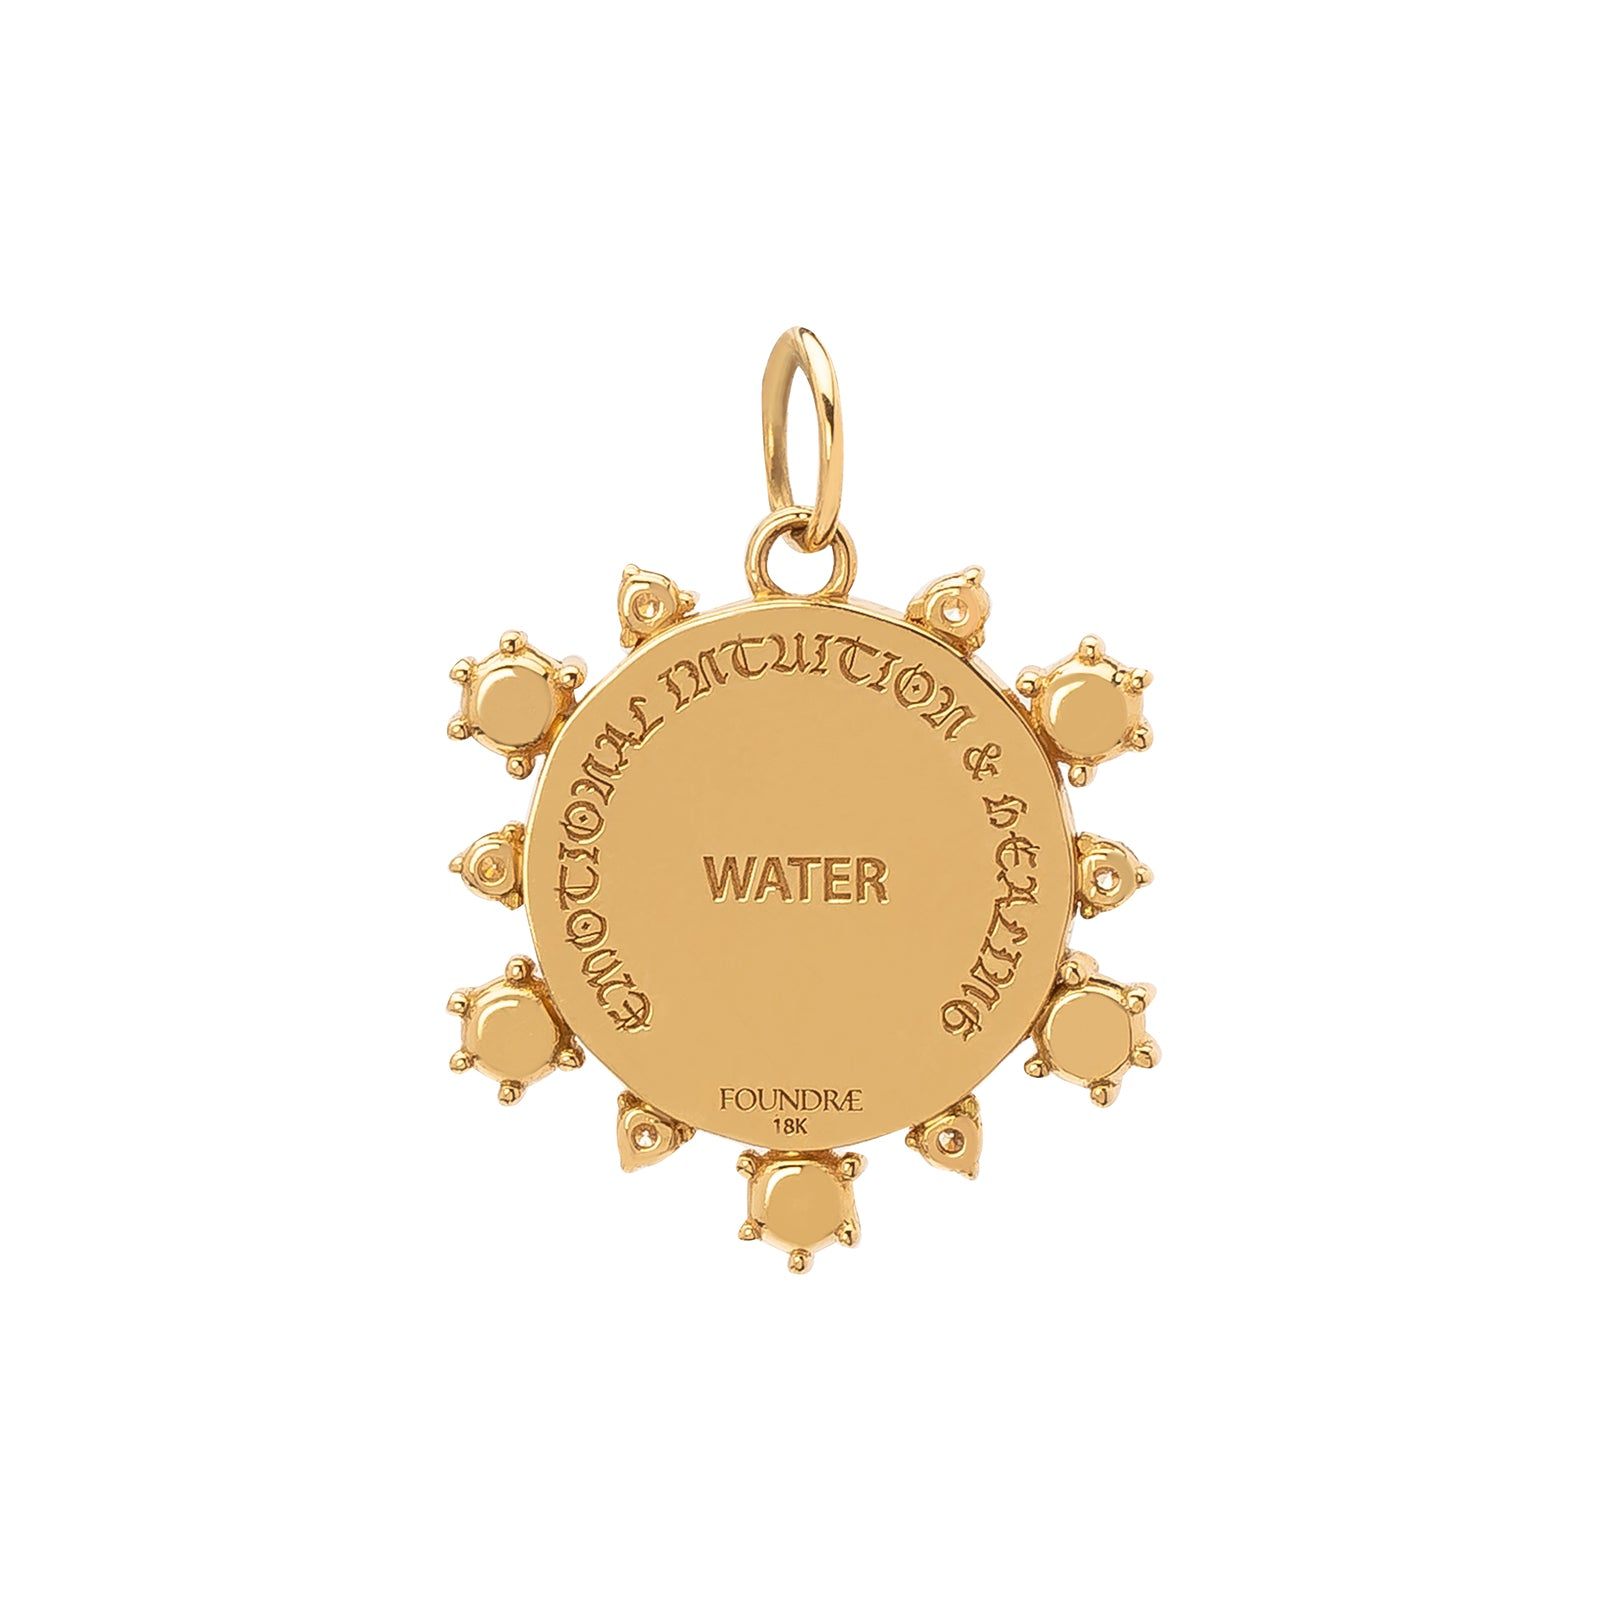 Foundrae Badge Medallion - Emotional Intuition & Healing Water - Charms & Pendants - Broken English Jewelry